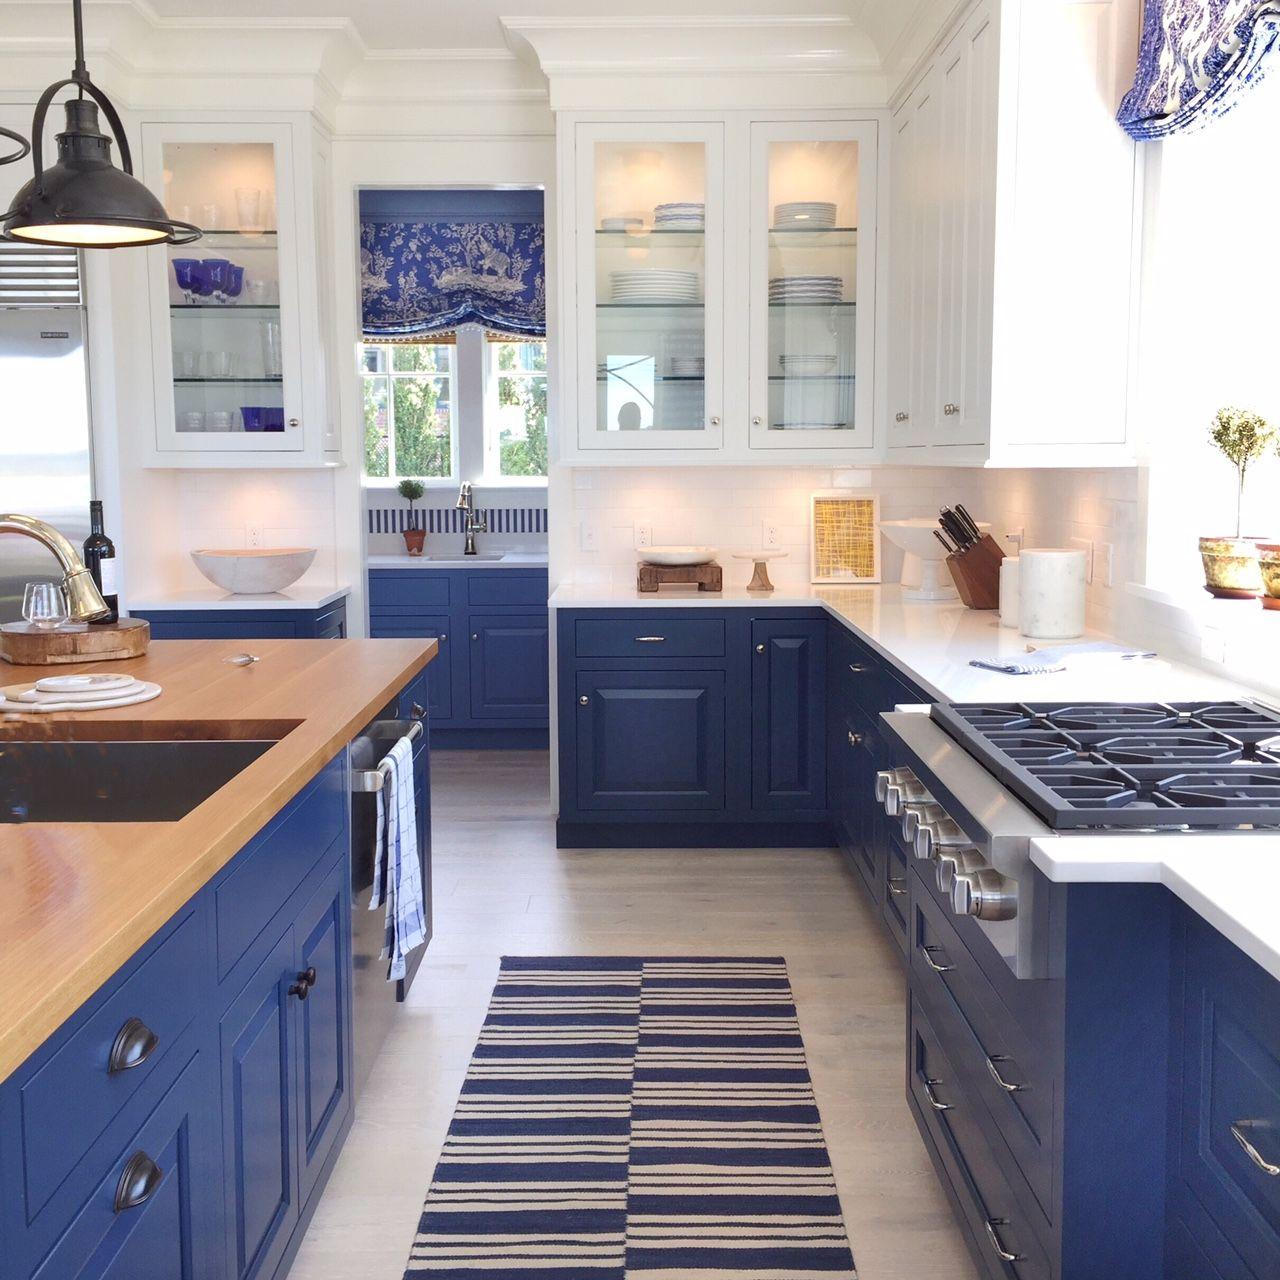 Blue And White Kitchen Cabinets Modern Kitchen Kitchen Remodel White Kitchen Decor